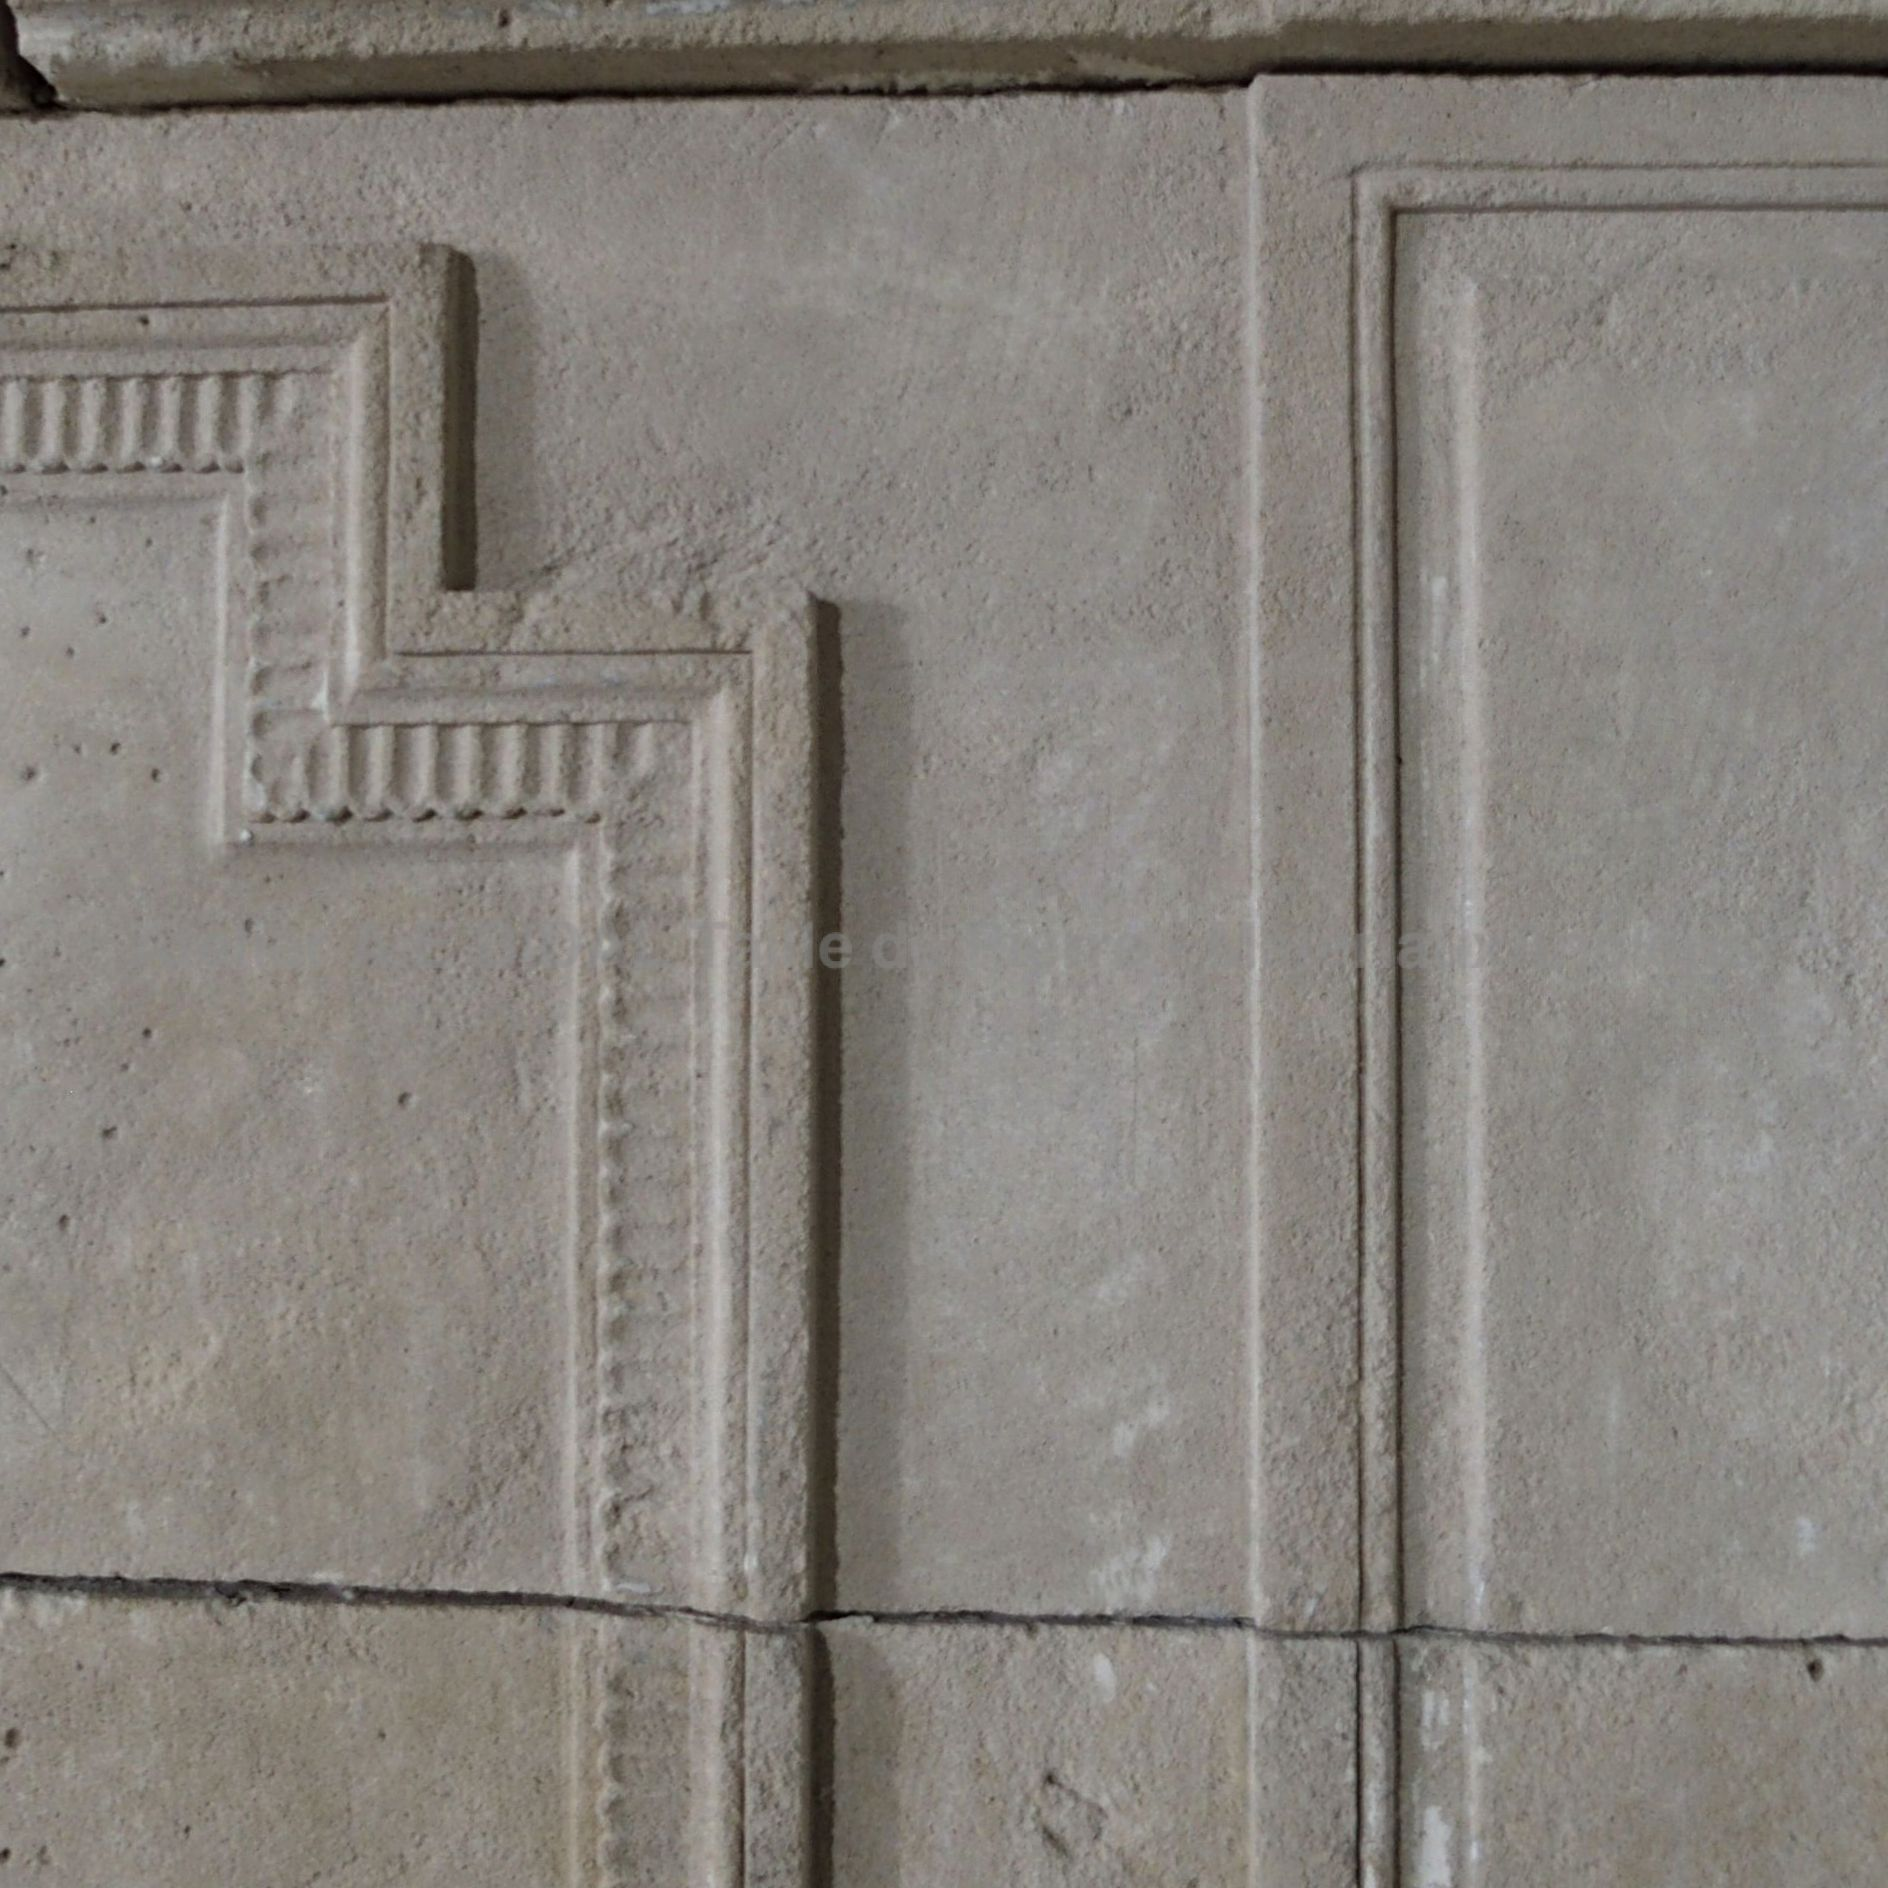 Louis 16 geometric fireplace - Antique fireplace carved in stone.